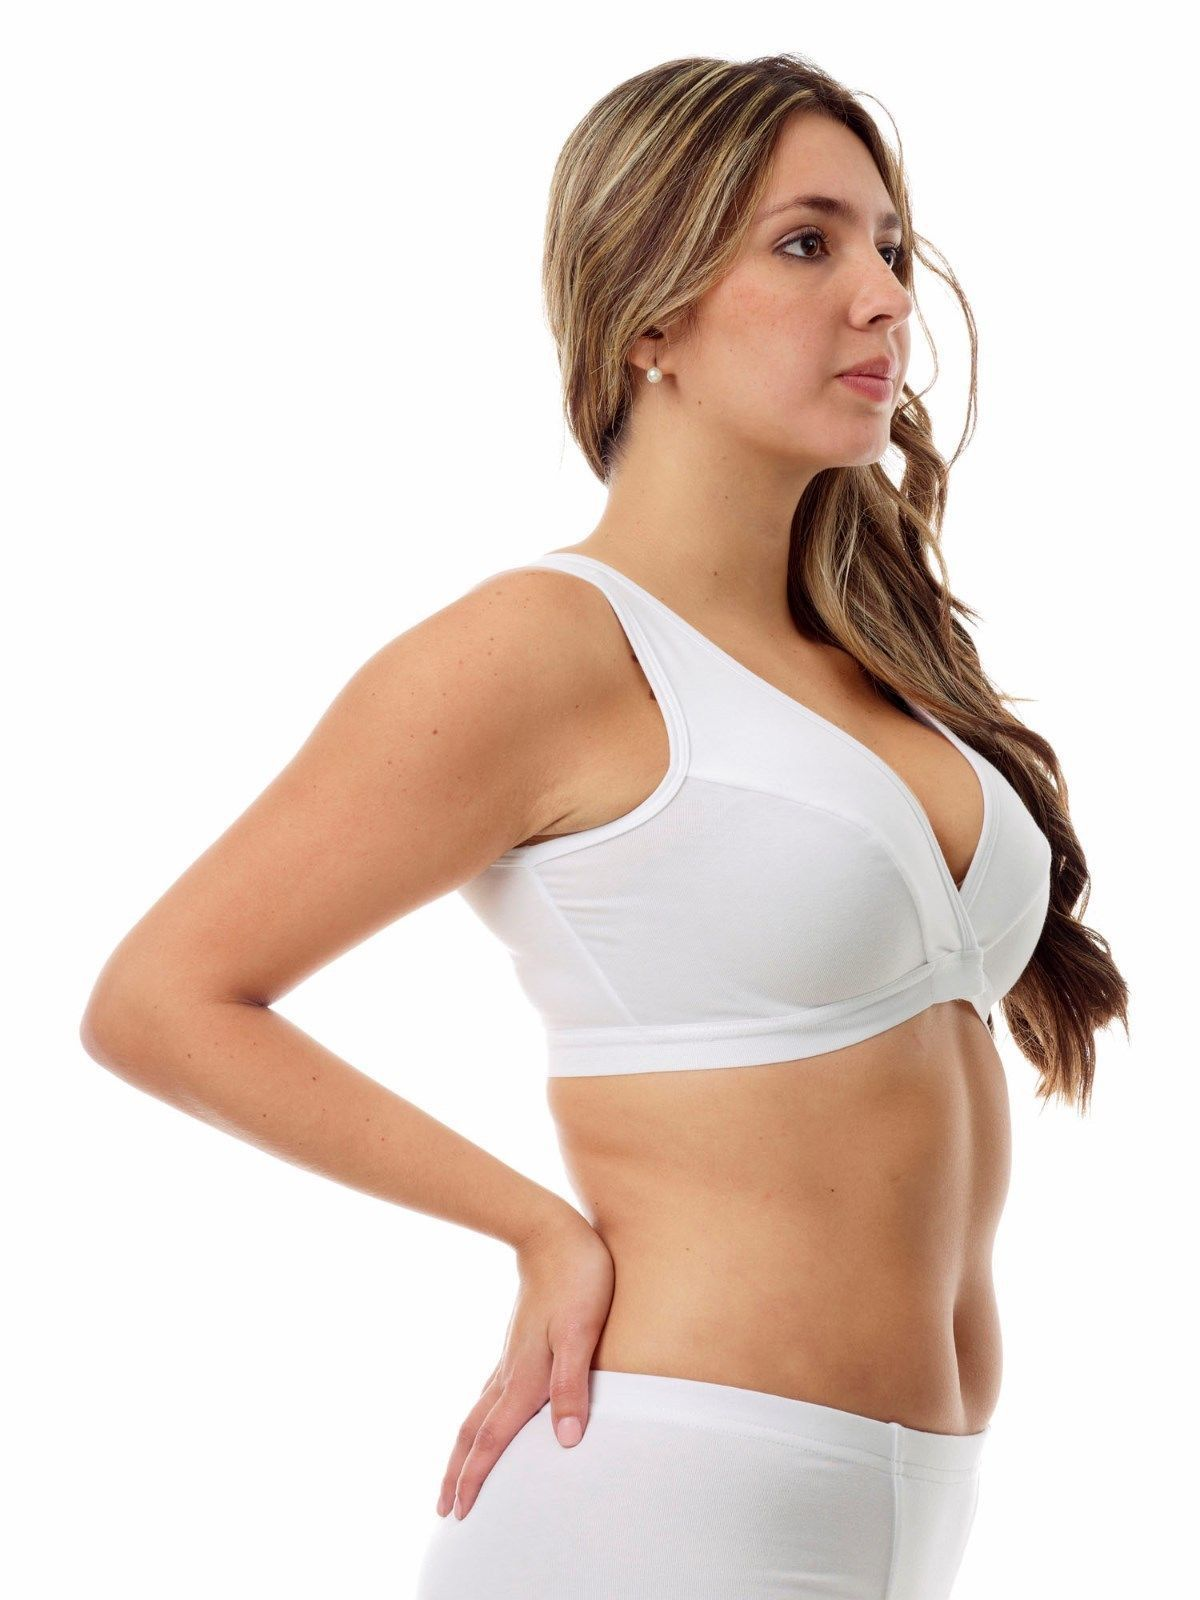 afb0f4d2491 A sports bra made from MagiCotton that prevents bounce during sporting  activity and works as an extreme chest binder.